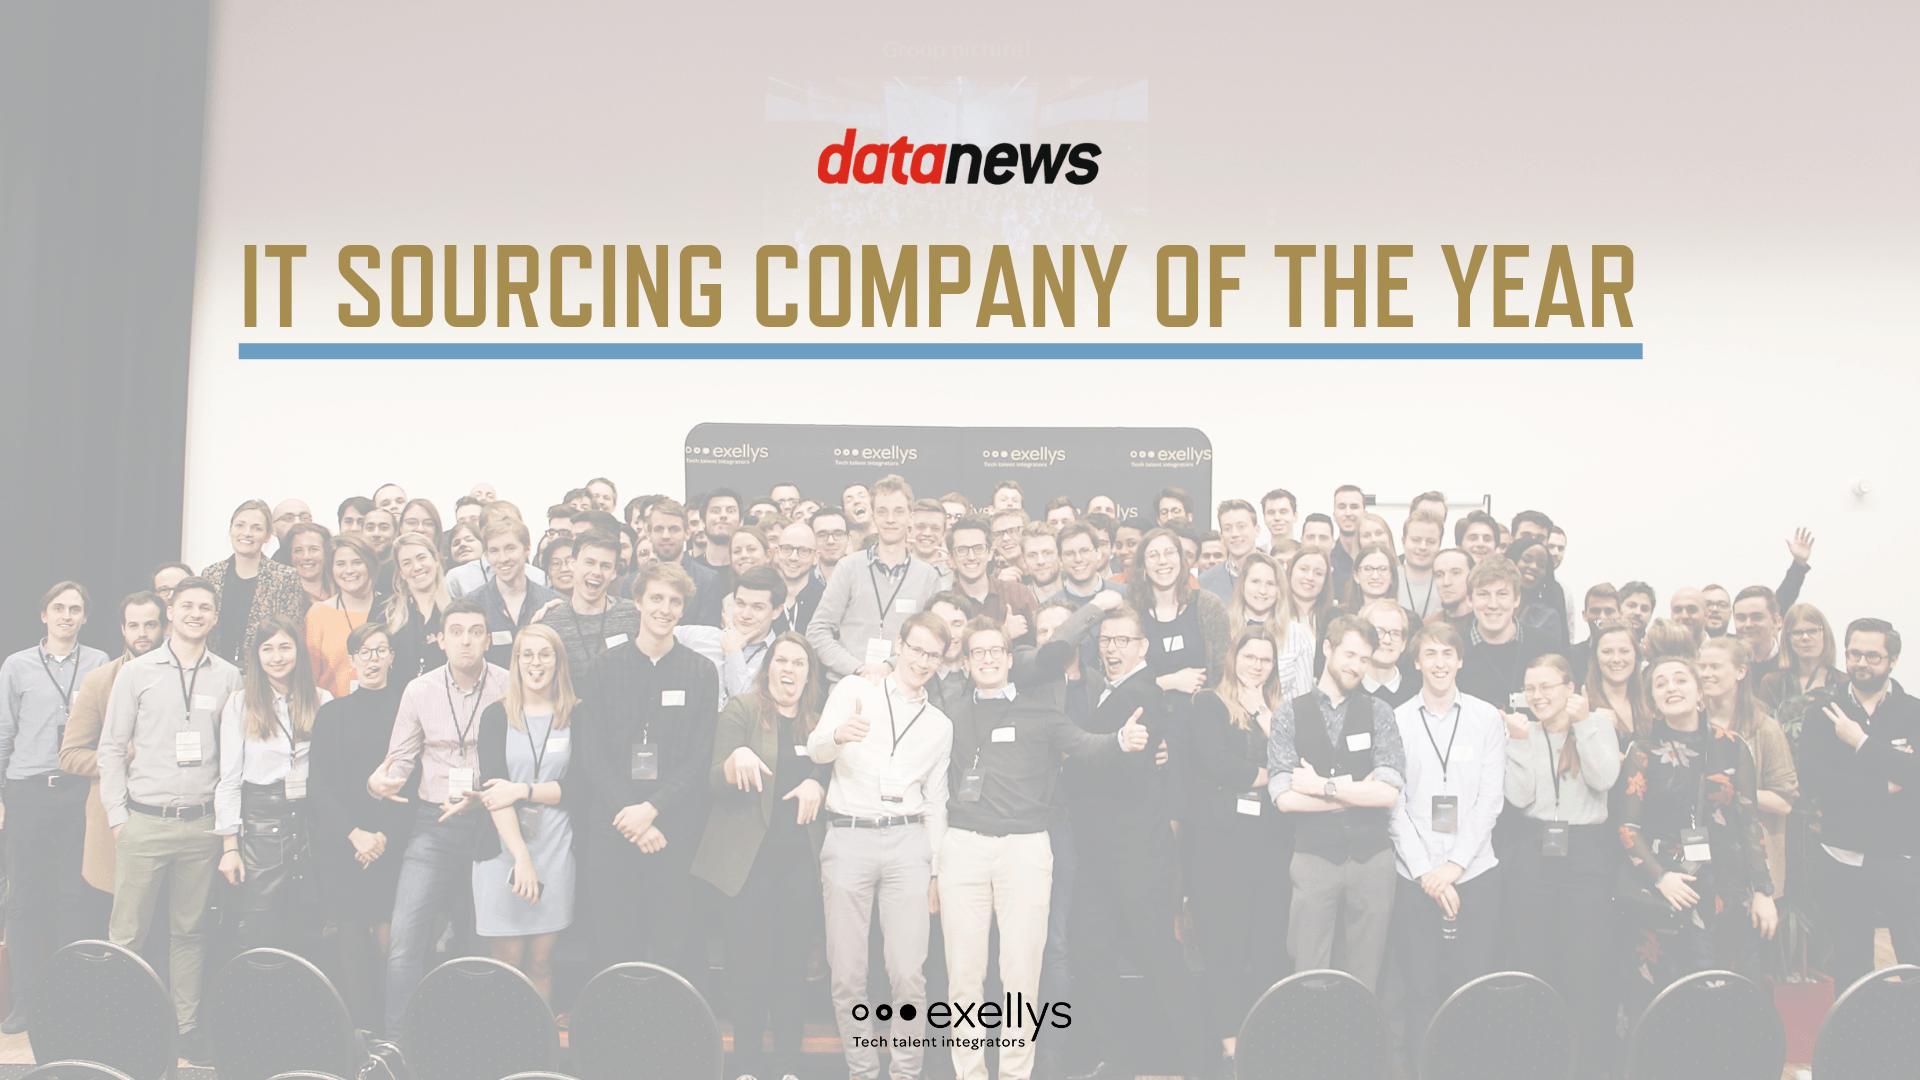 IT Sourcing Company of the Year visual